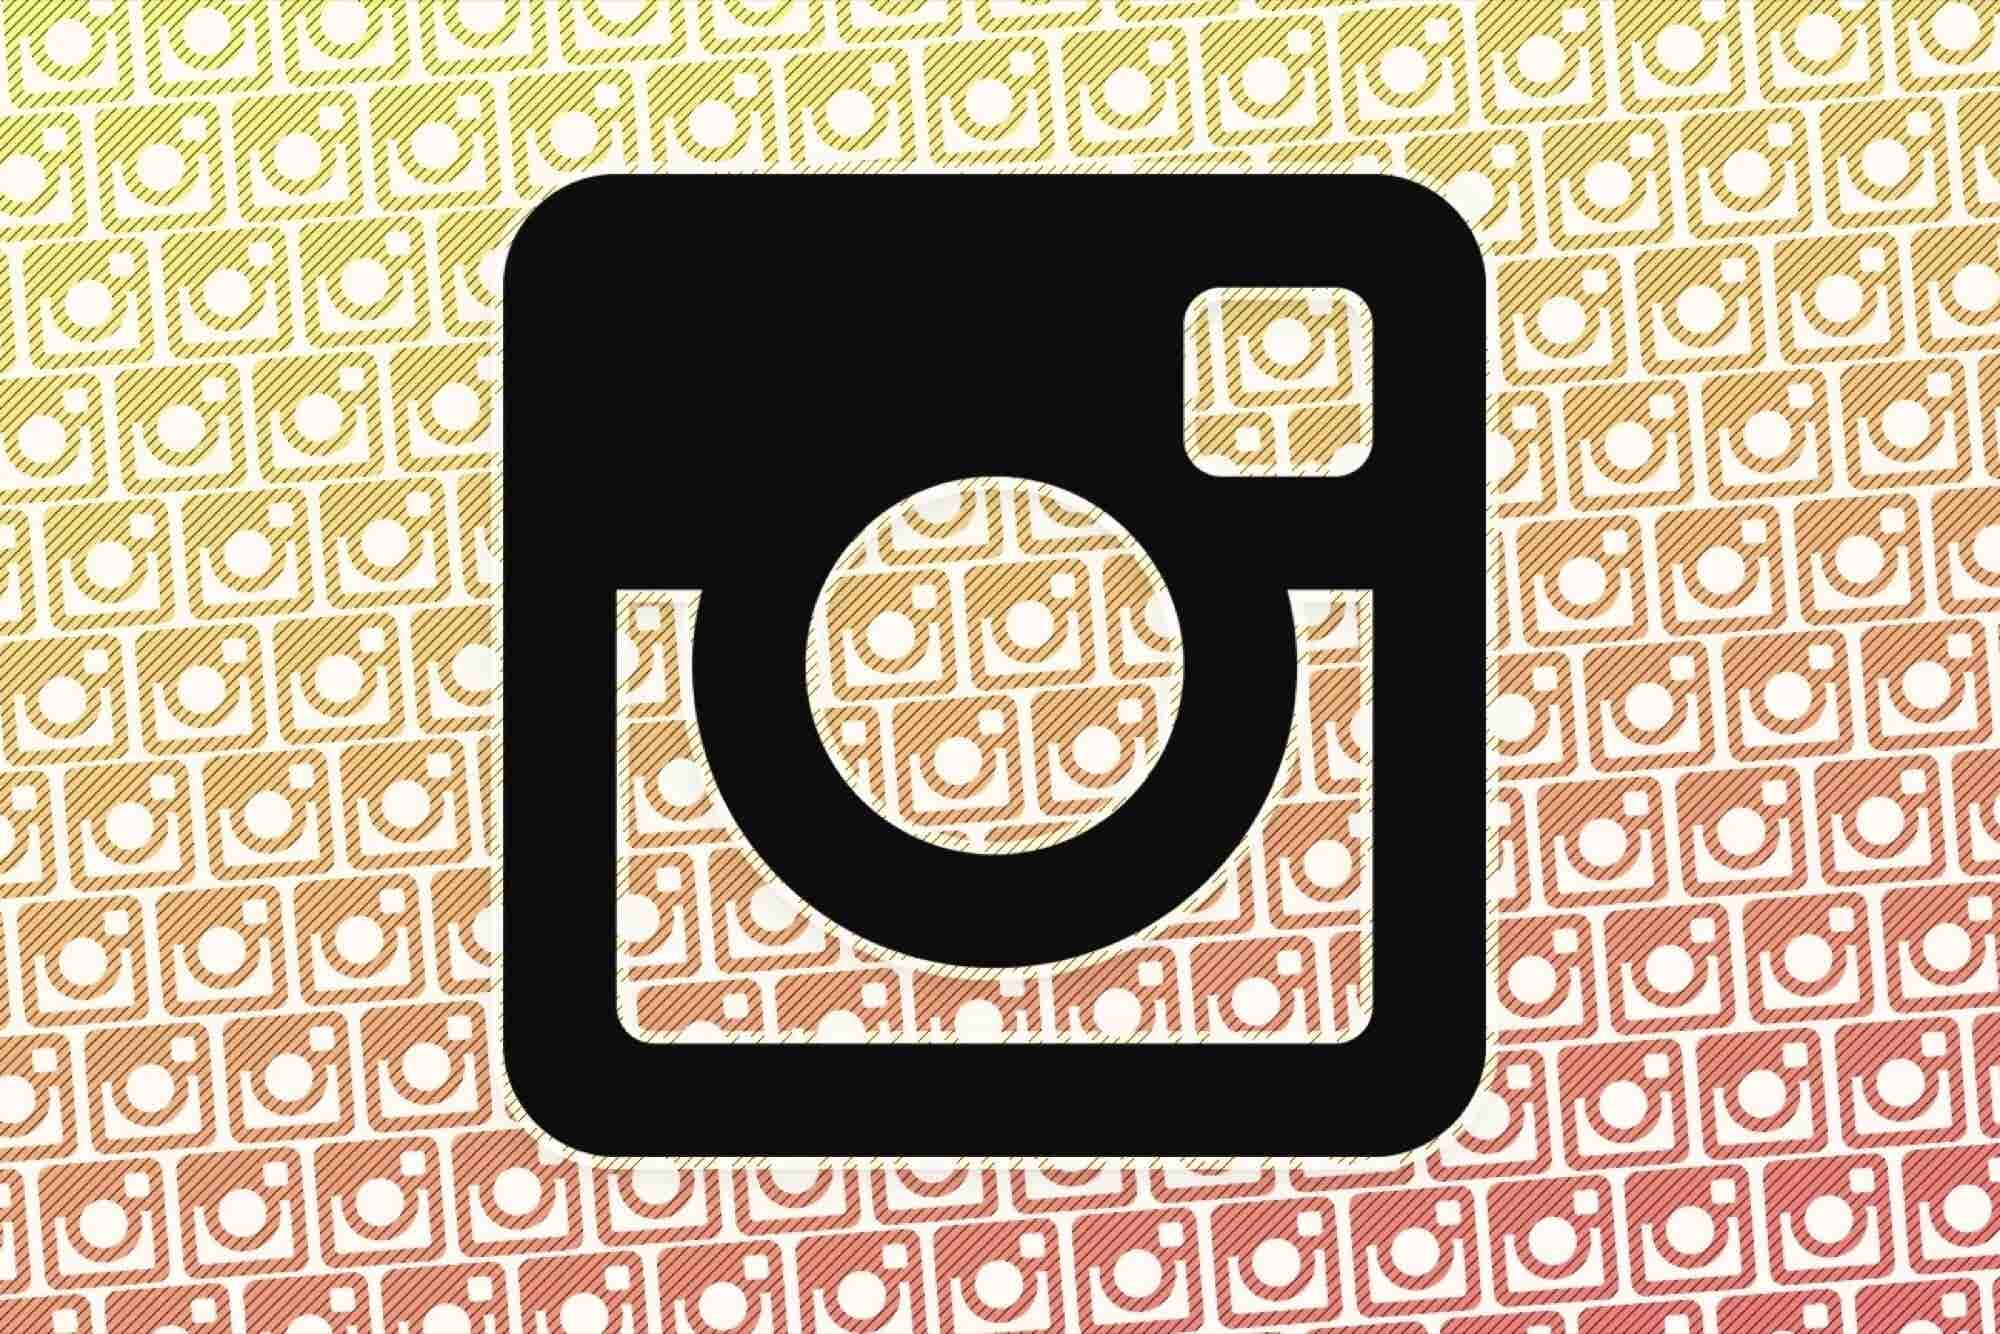 Instagram Adds New Features to Direct Messaging